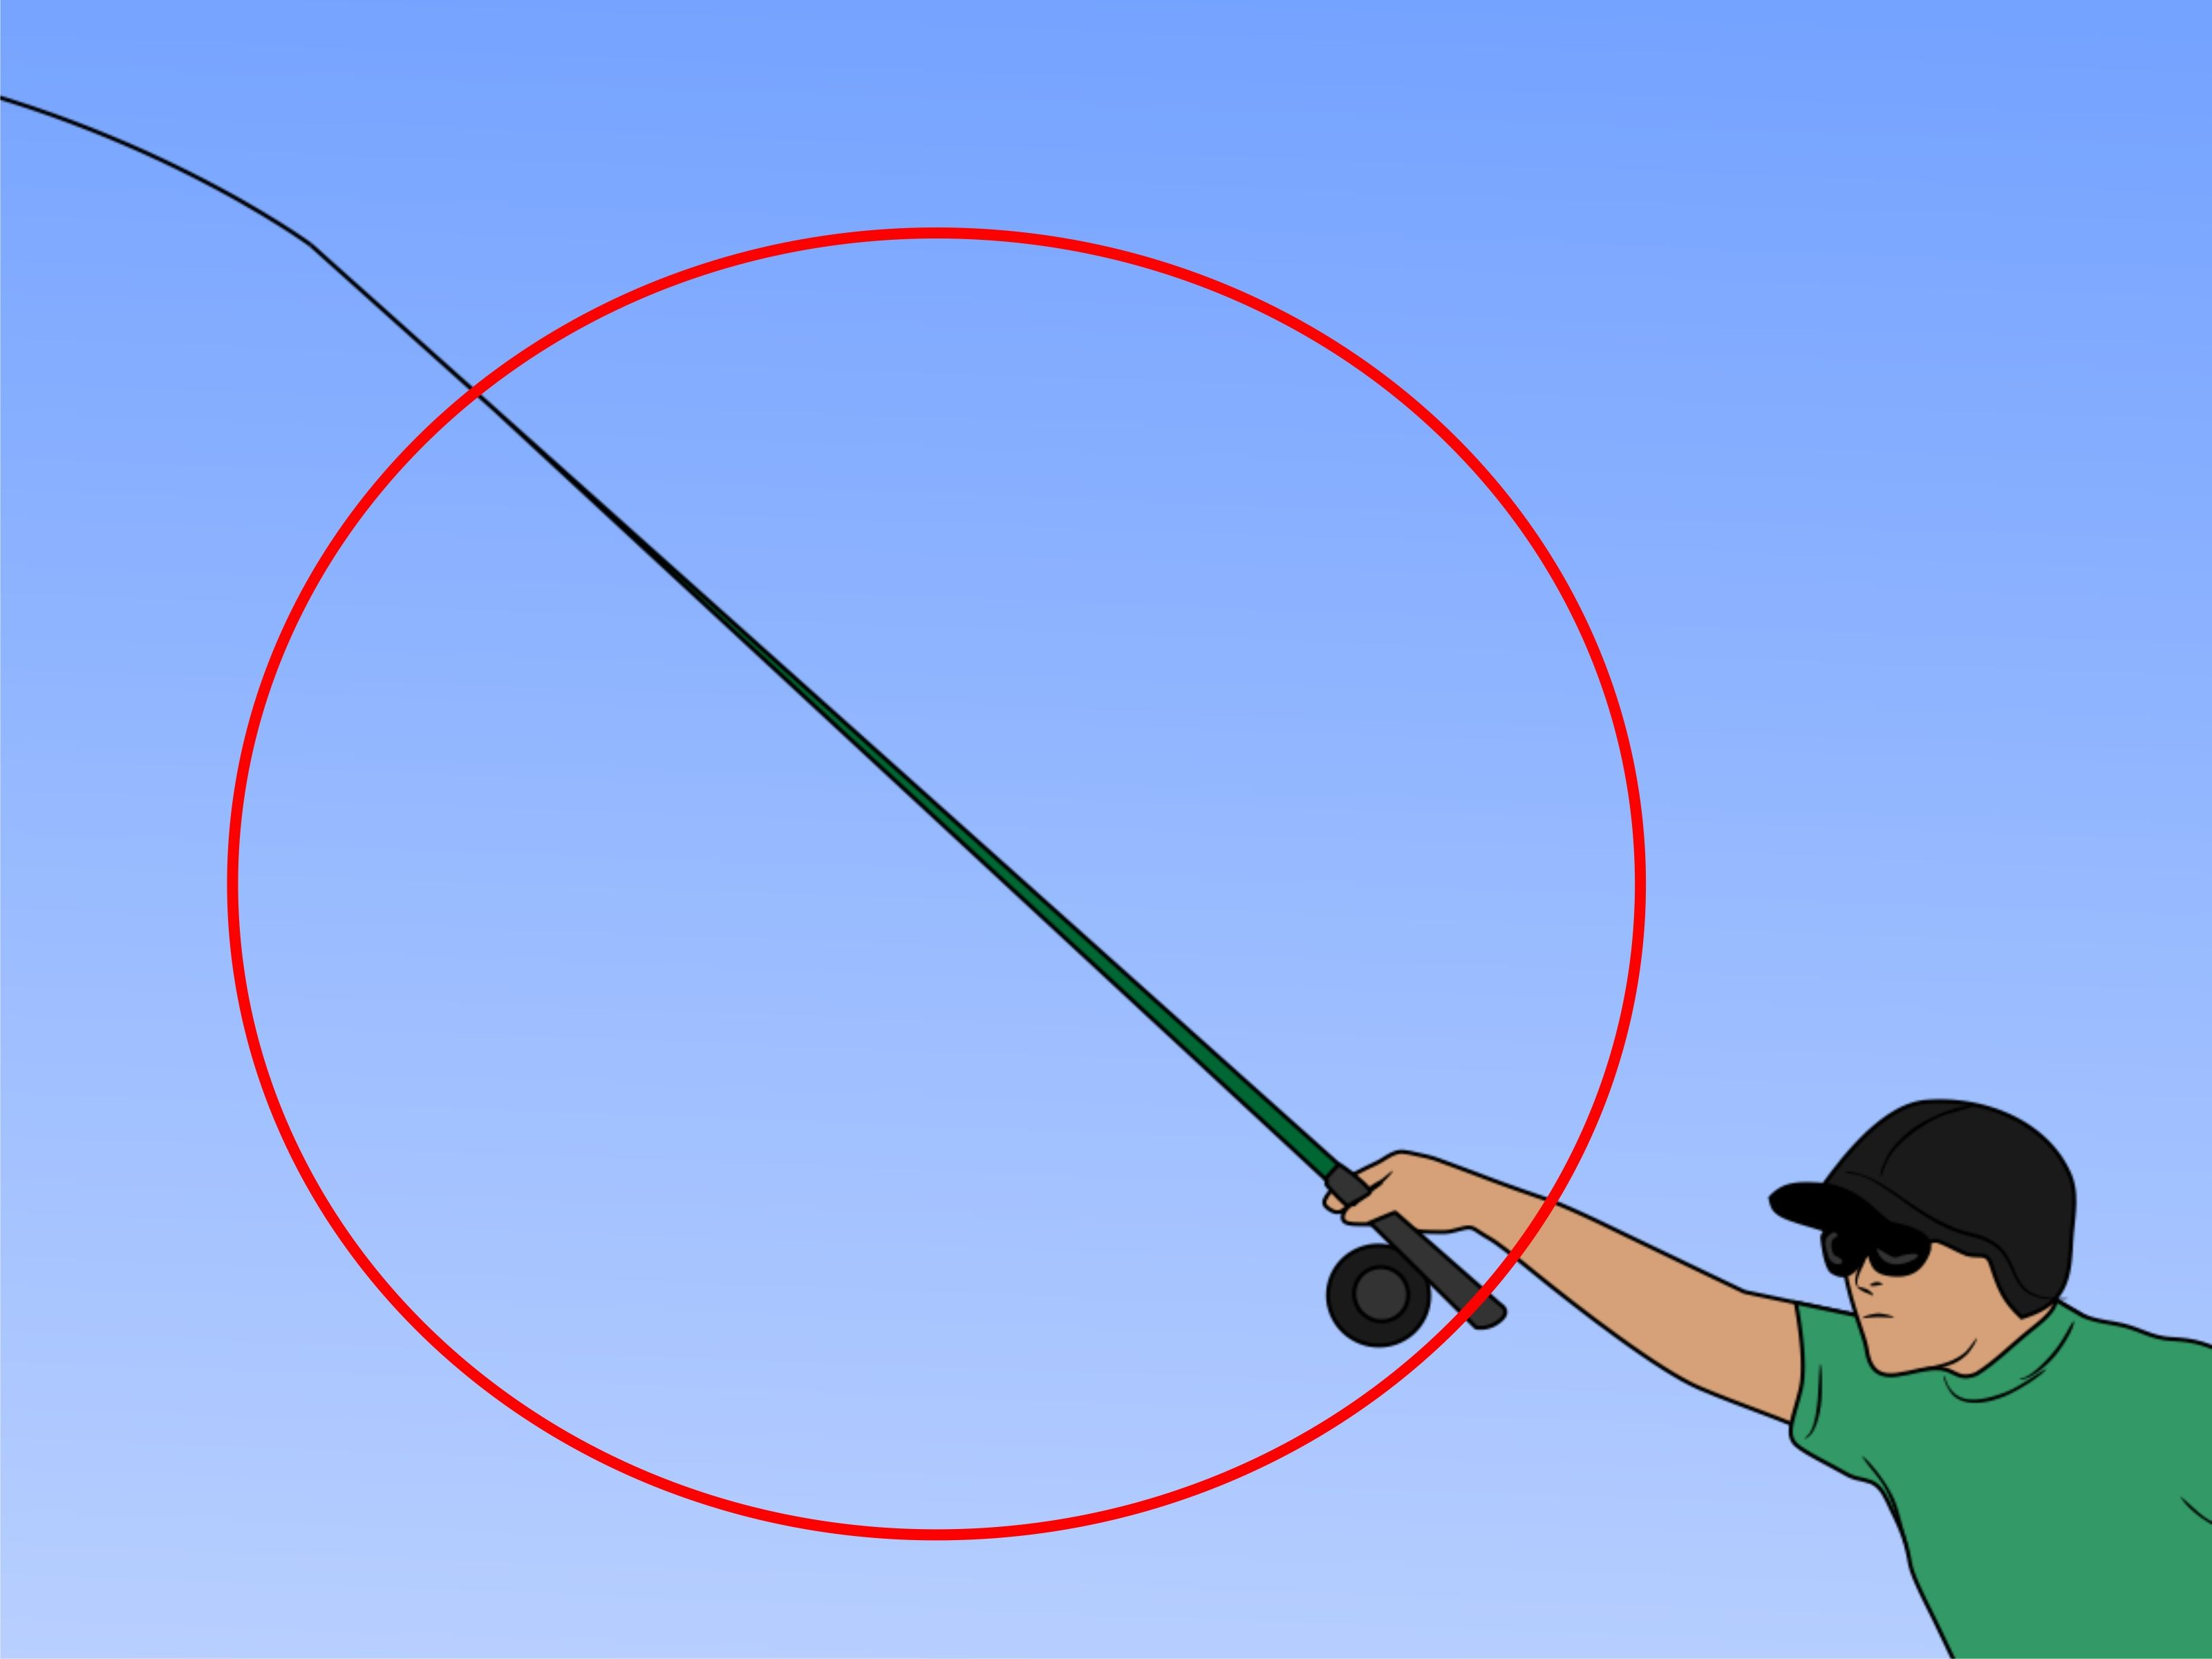 How To Cast A Fly Fishing Rod Fly Fishing Fishing Techniques Fly Fishing Rods